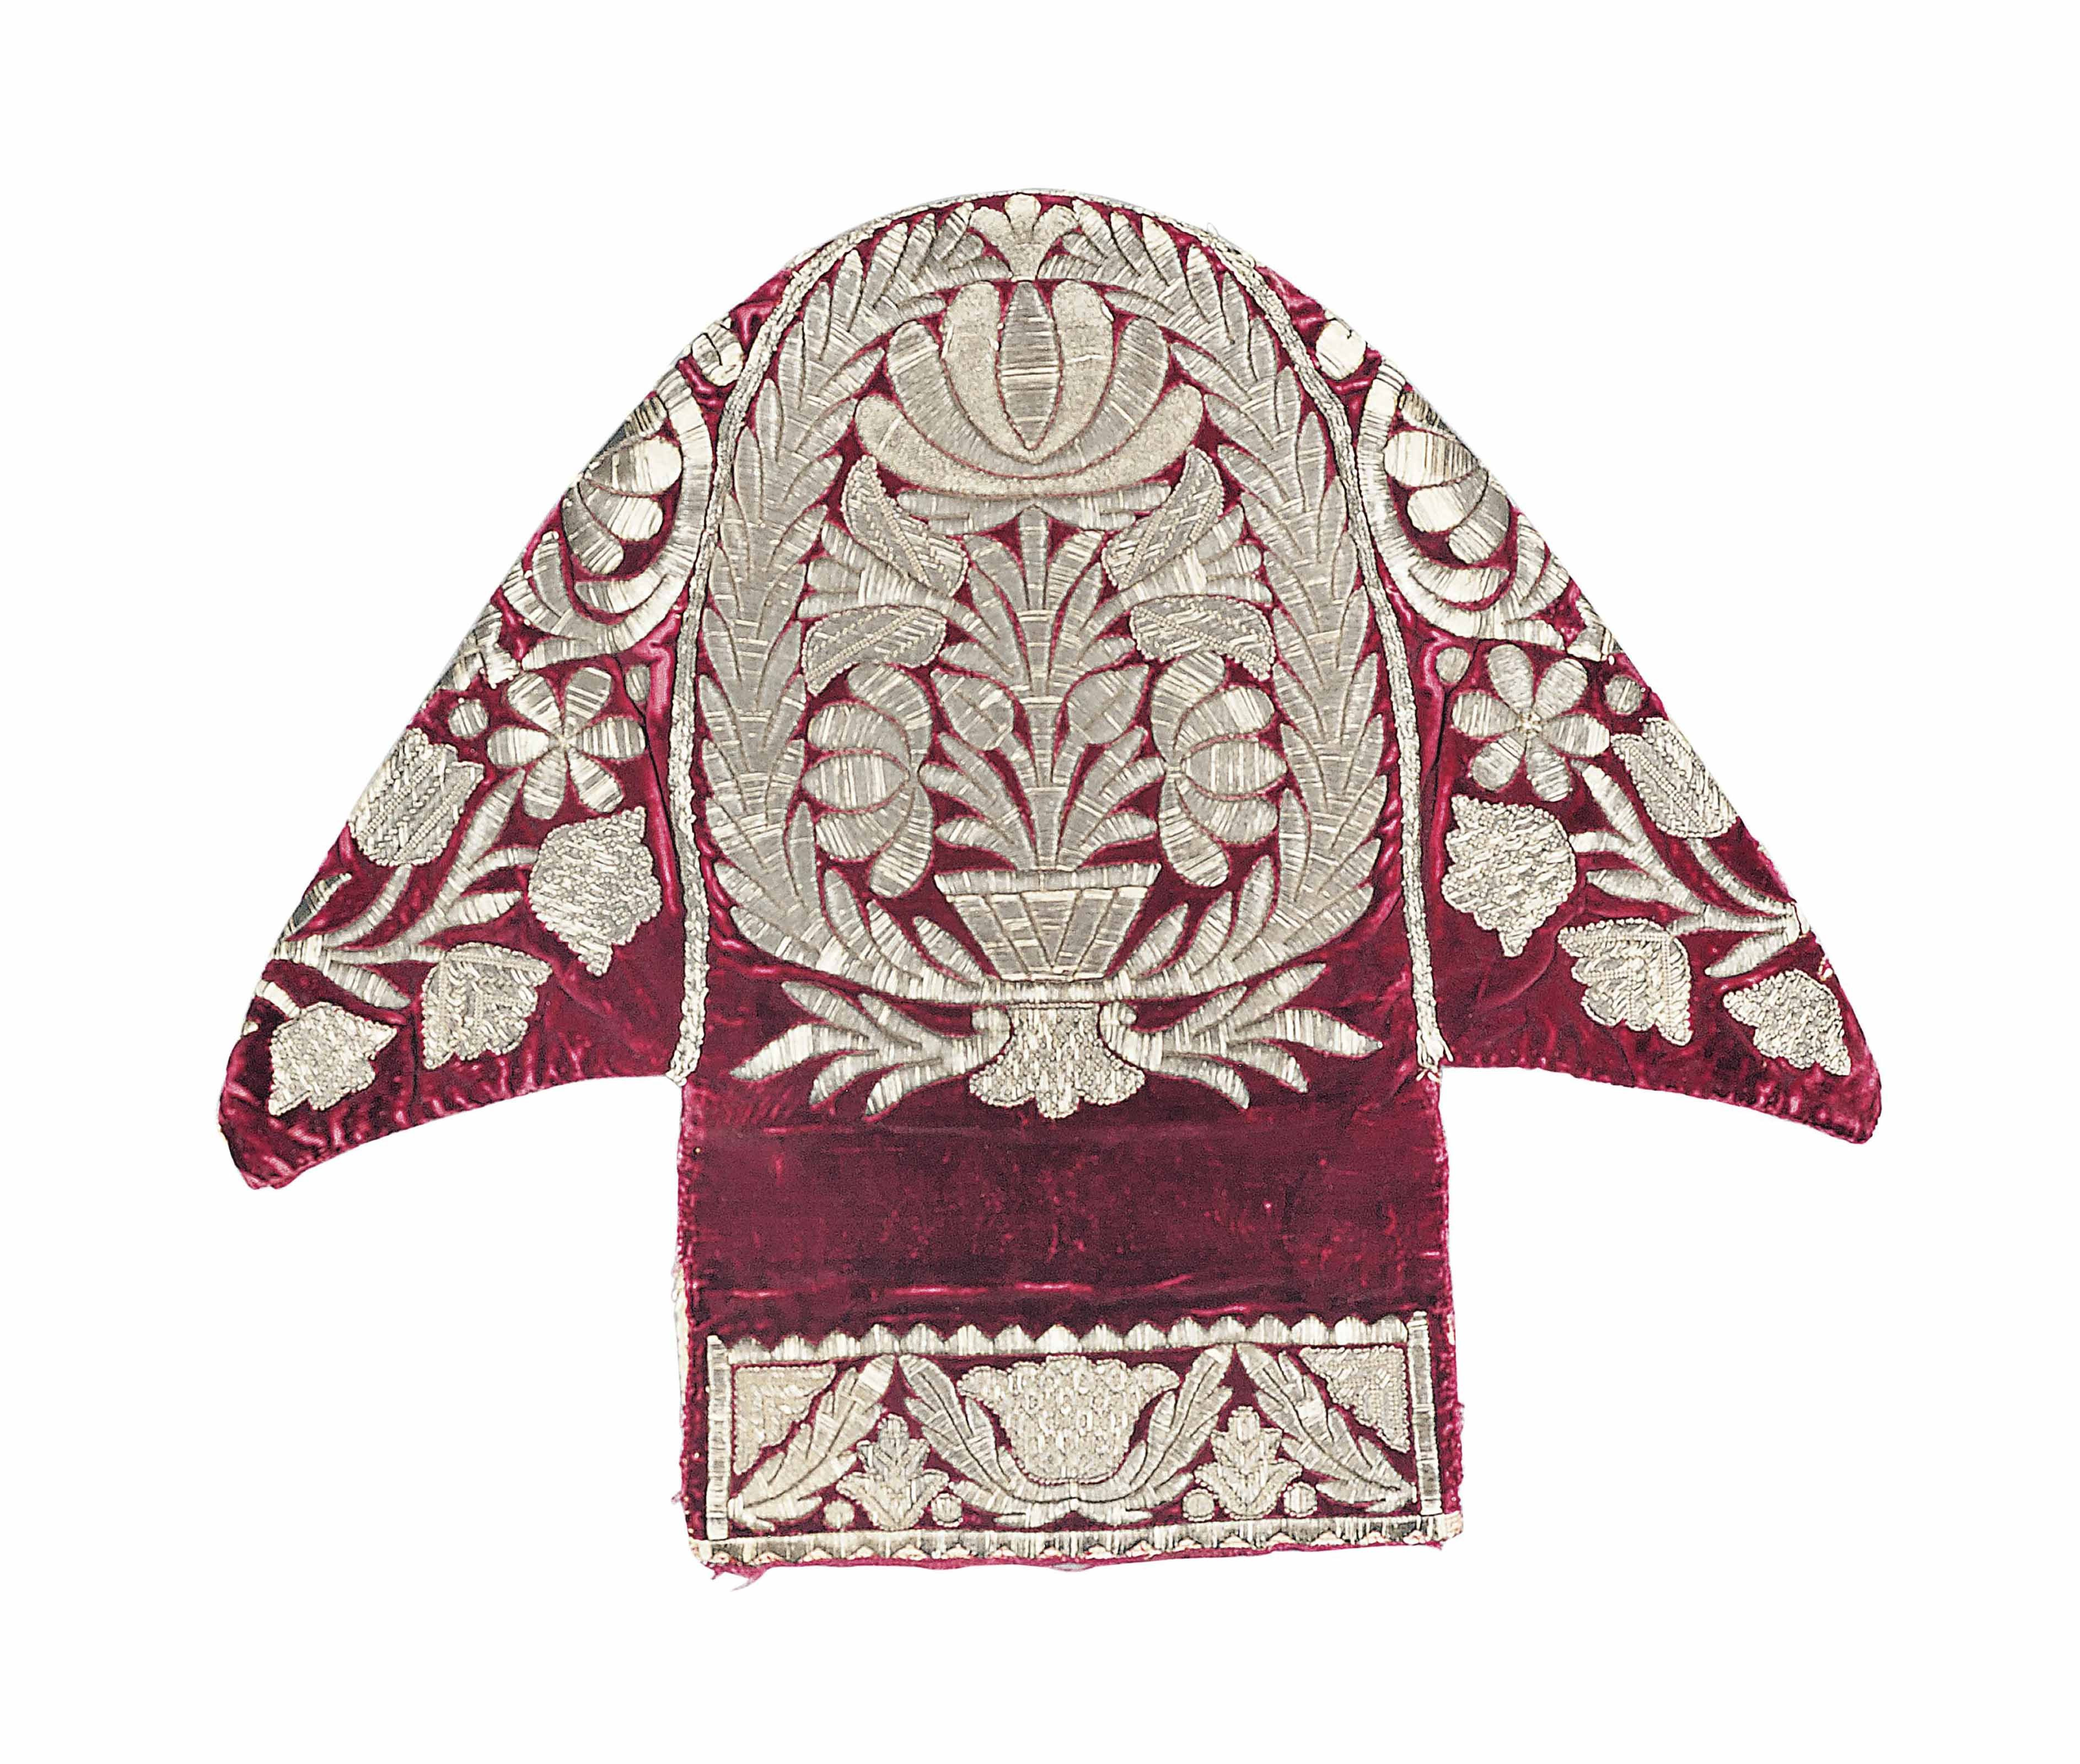 A SILVER-EMBROIDERED VELVET HE